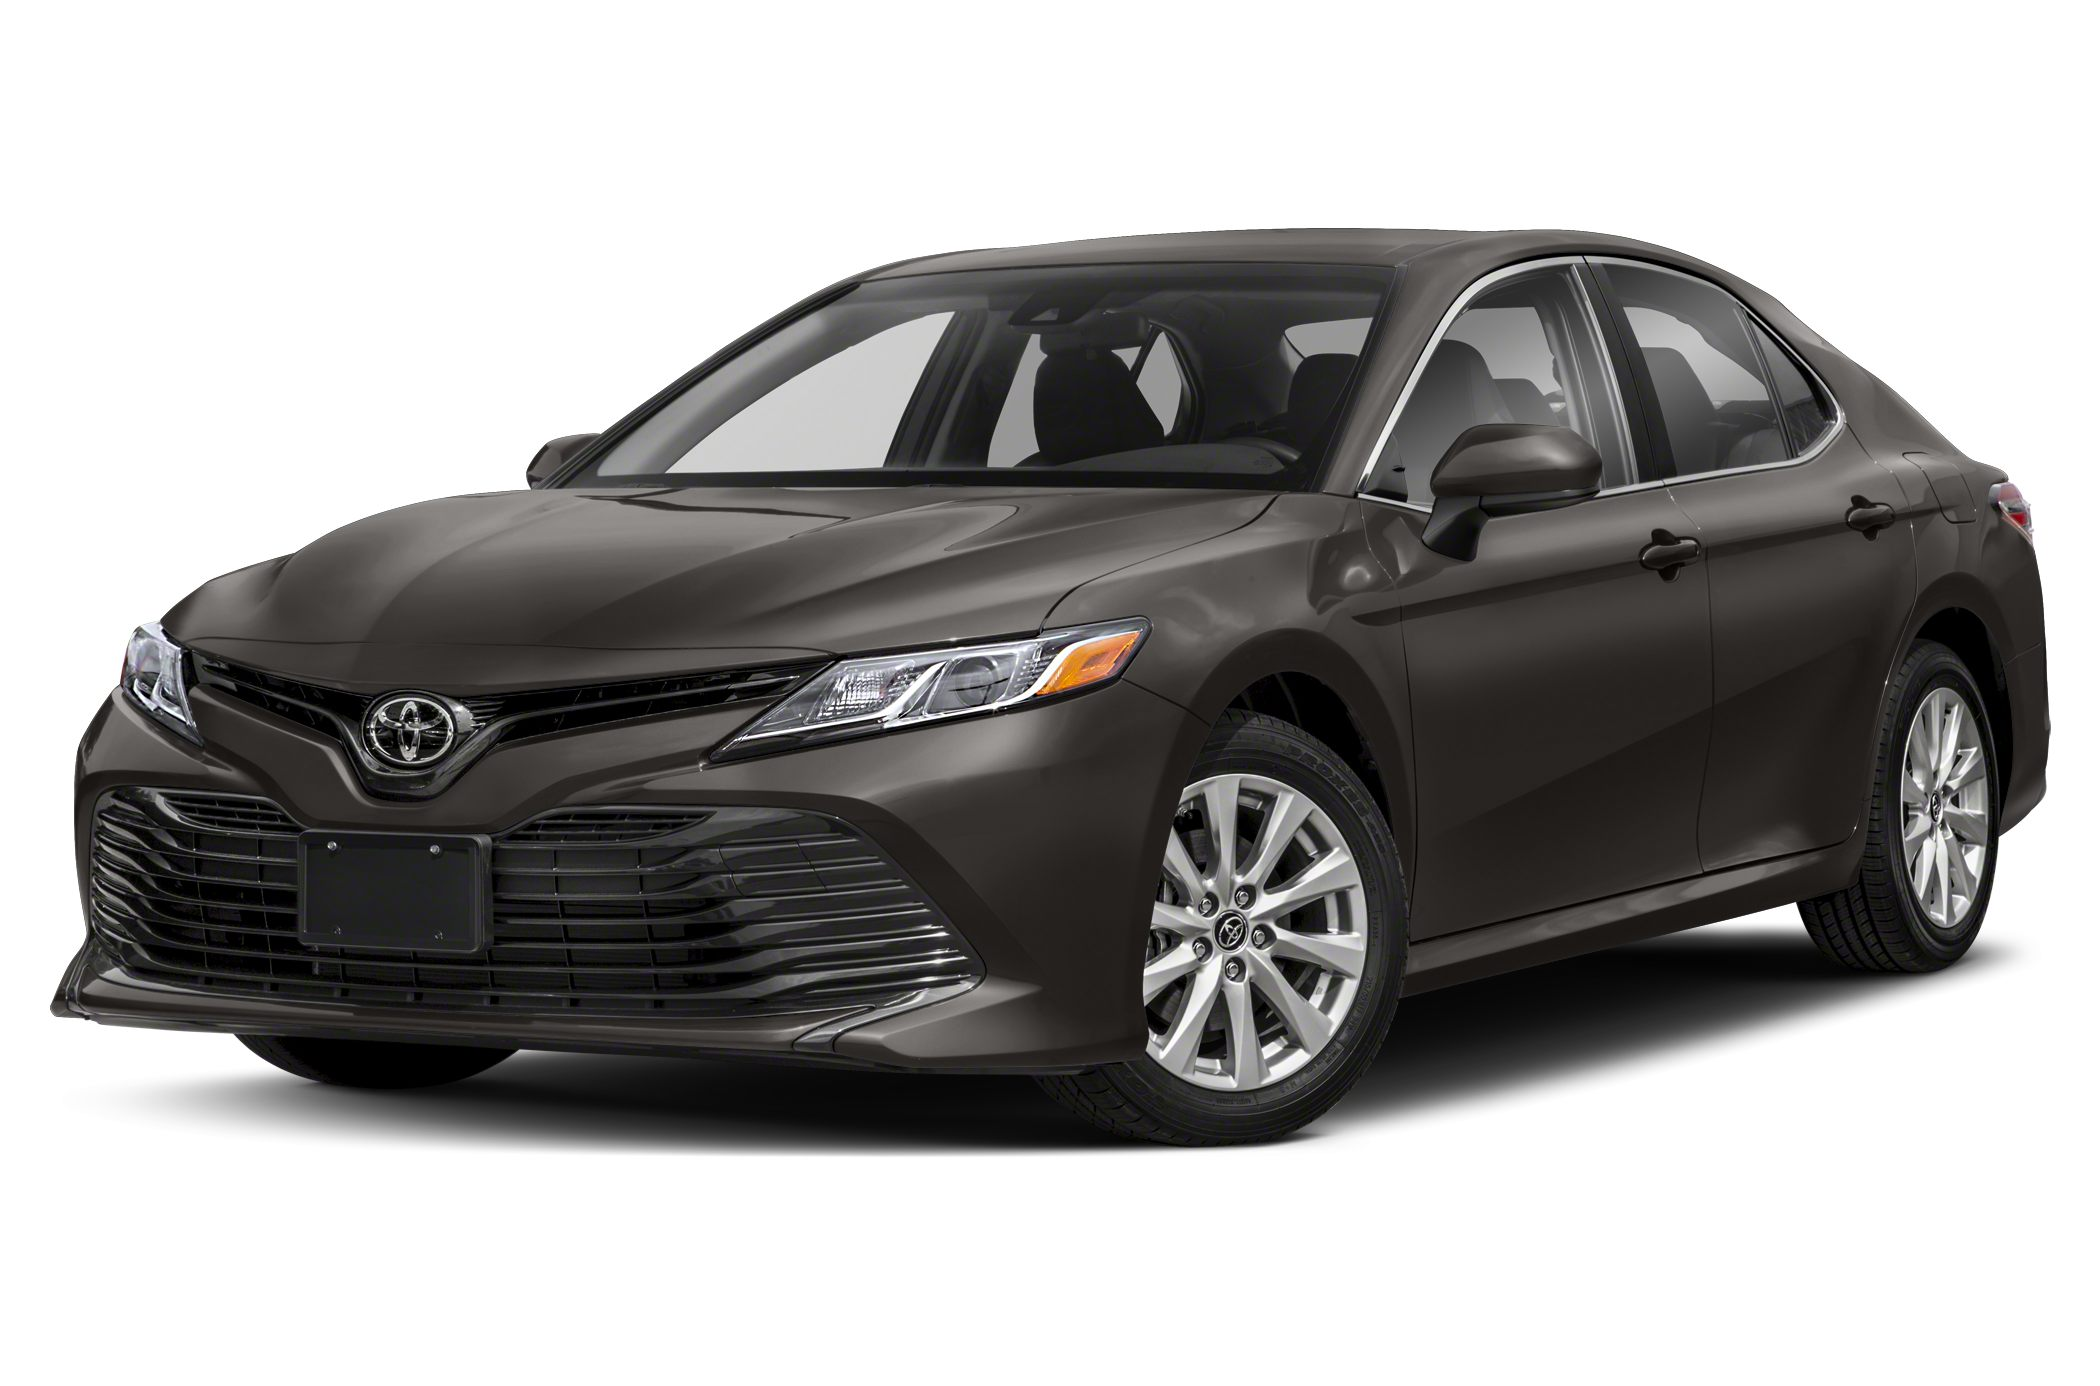 Car Residual Values >> 2019 Toyota Camry Deals, Prices, Incentives & Leases, Overview - CarsDirect